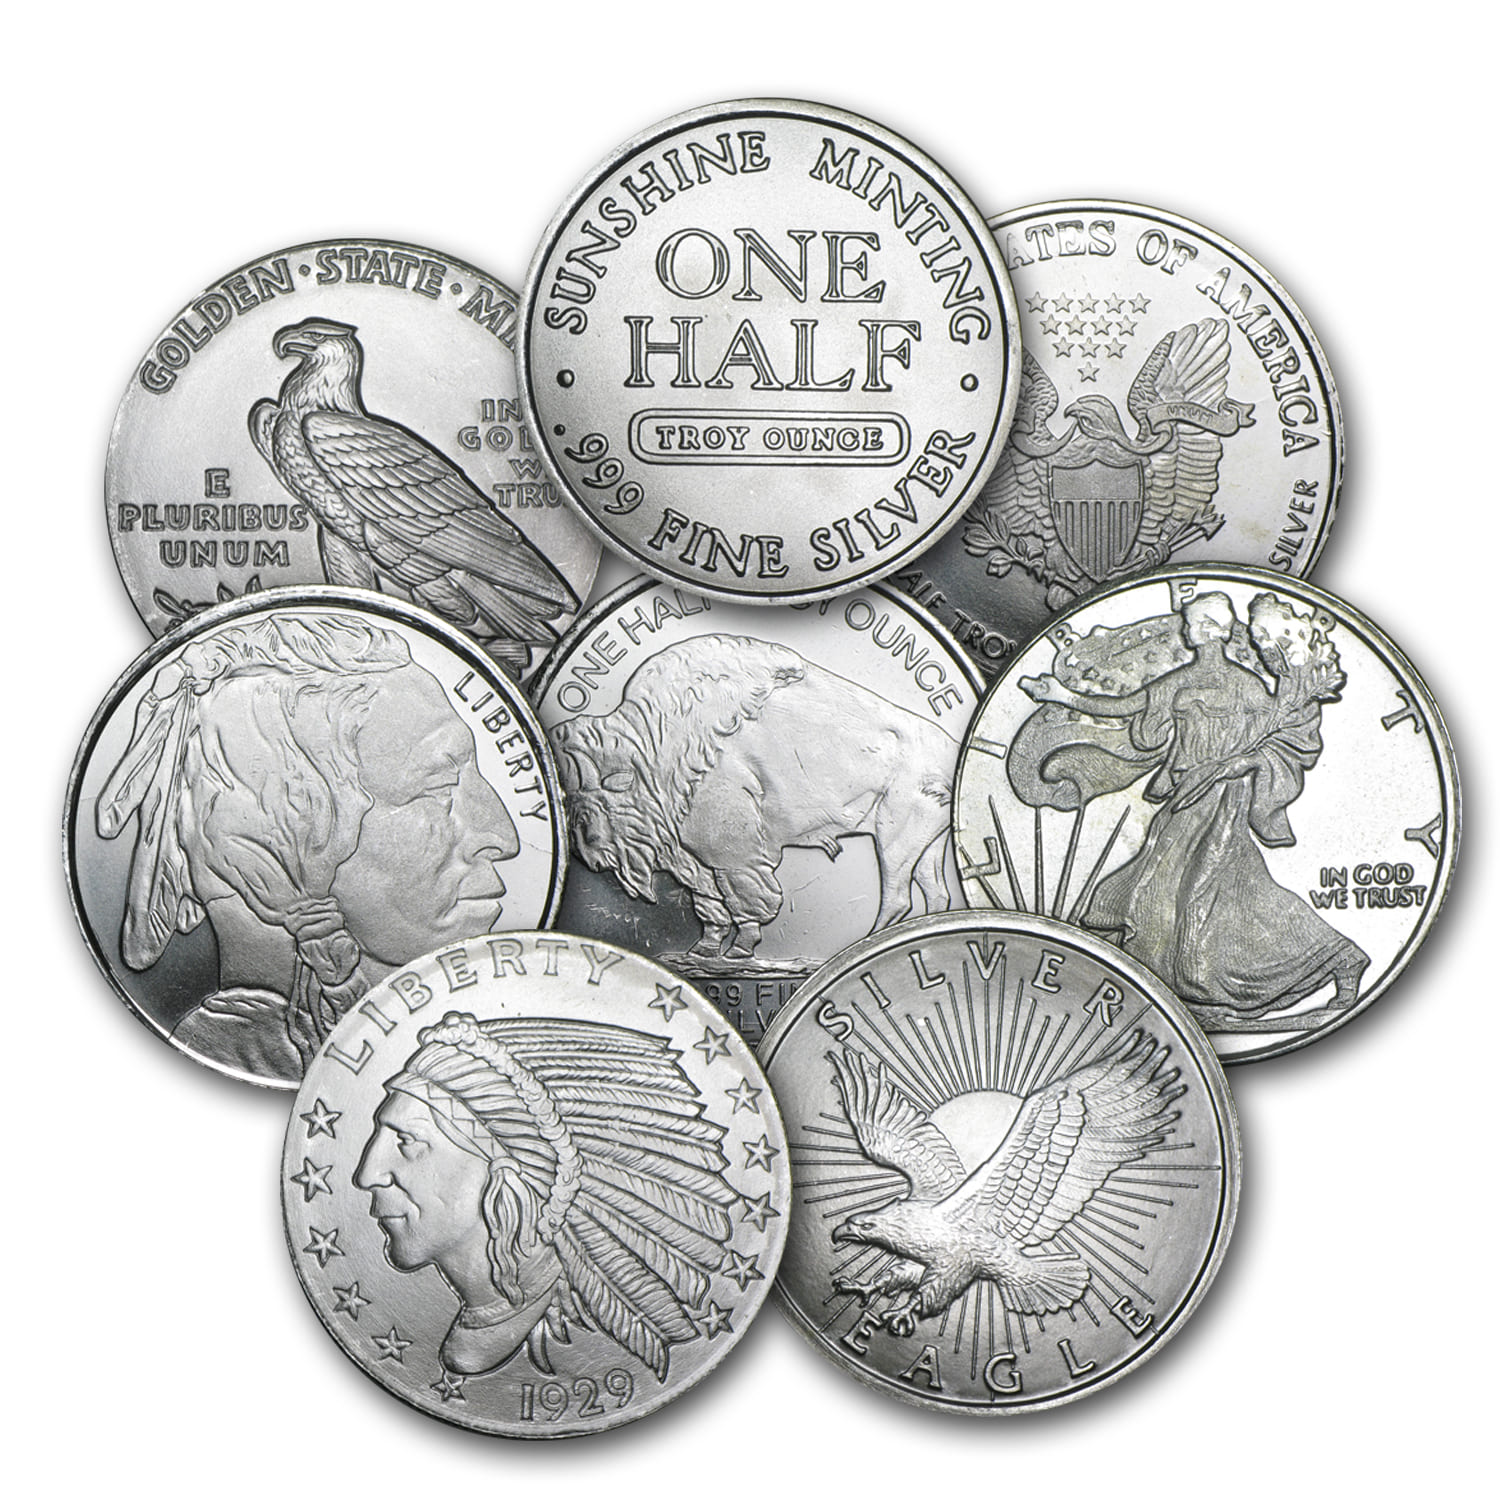 1/2 oz Silver Round - Secondary Market